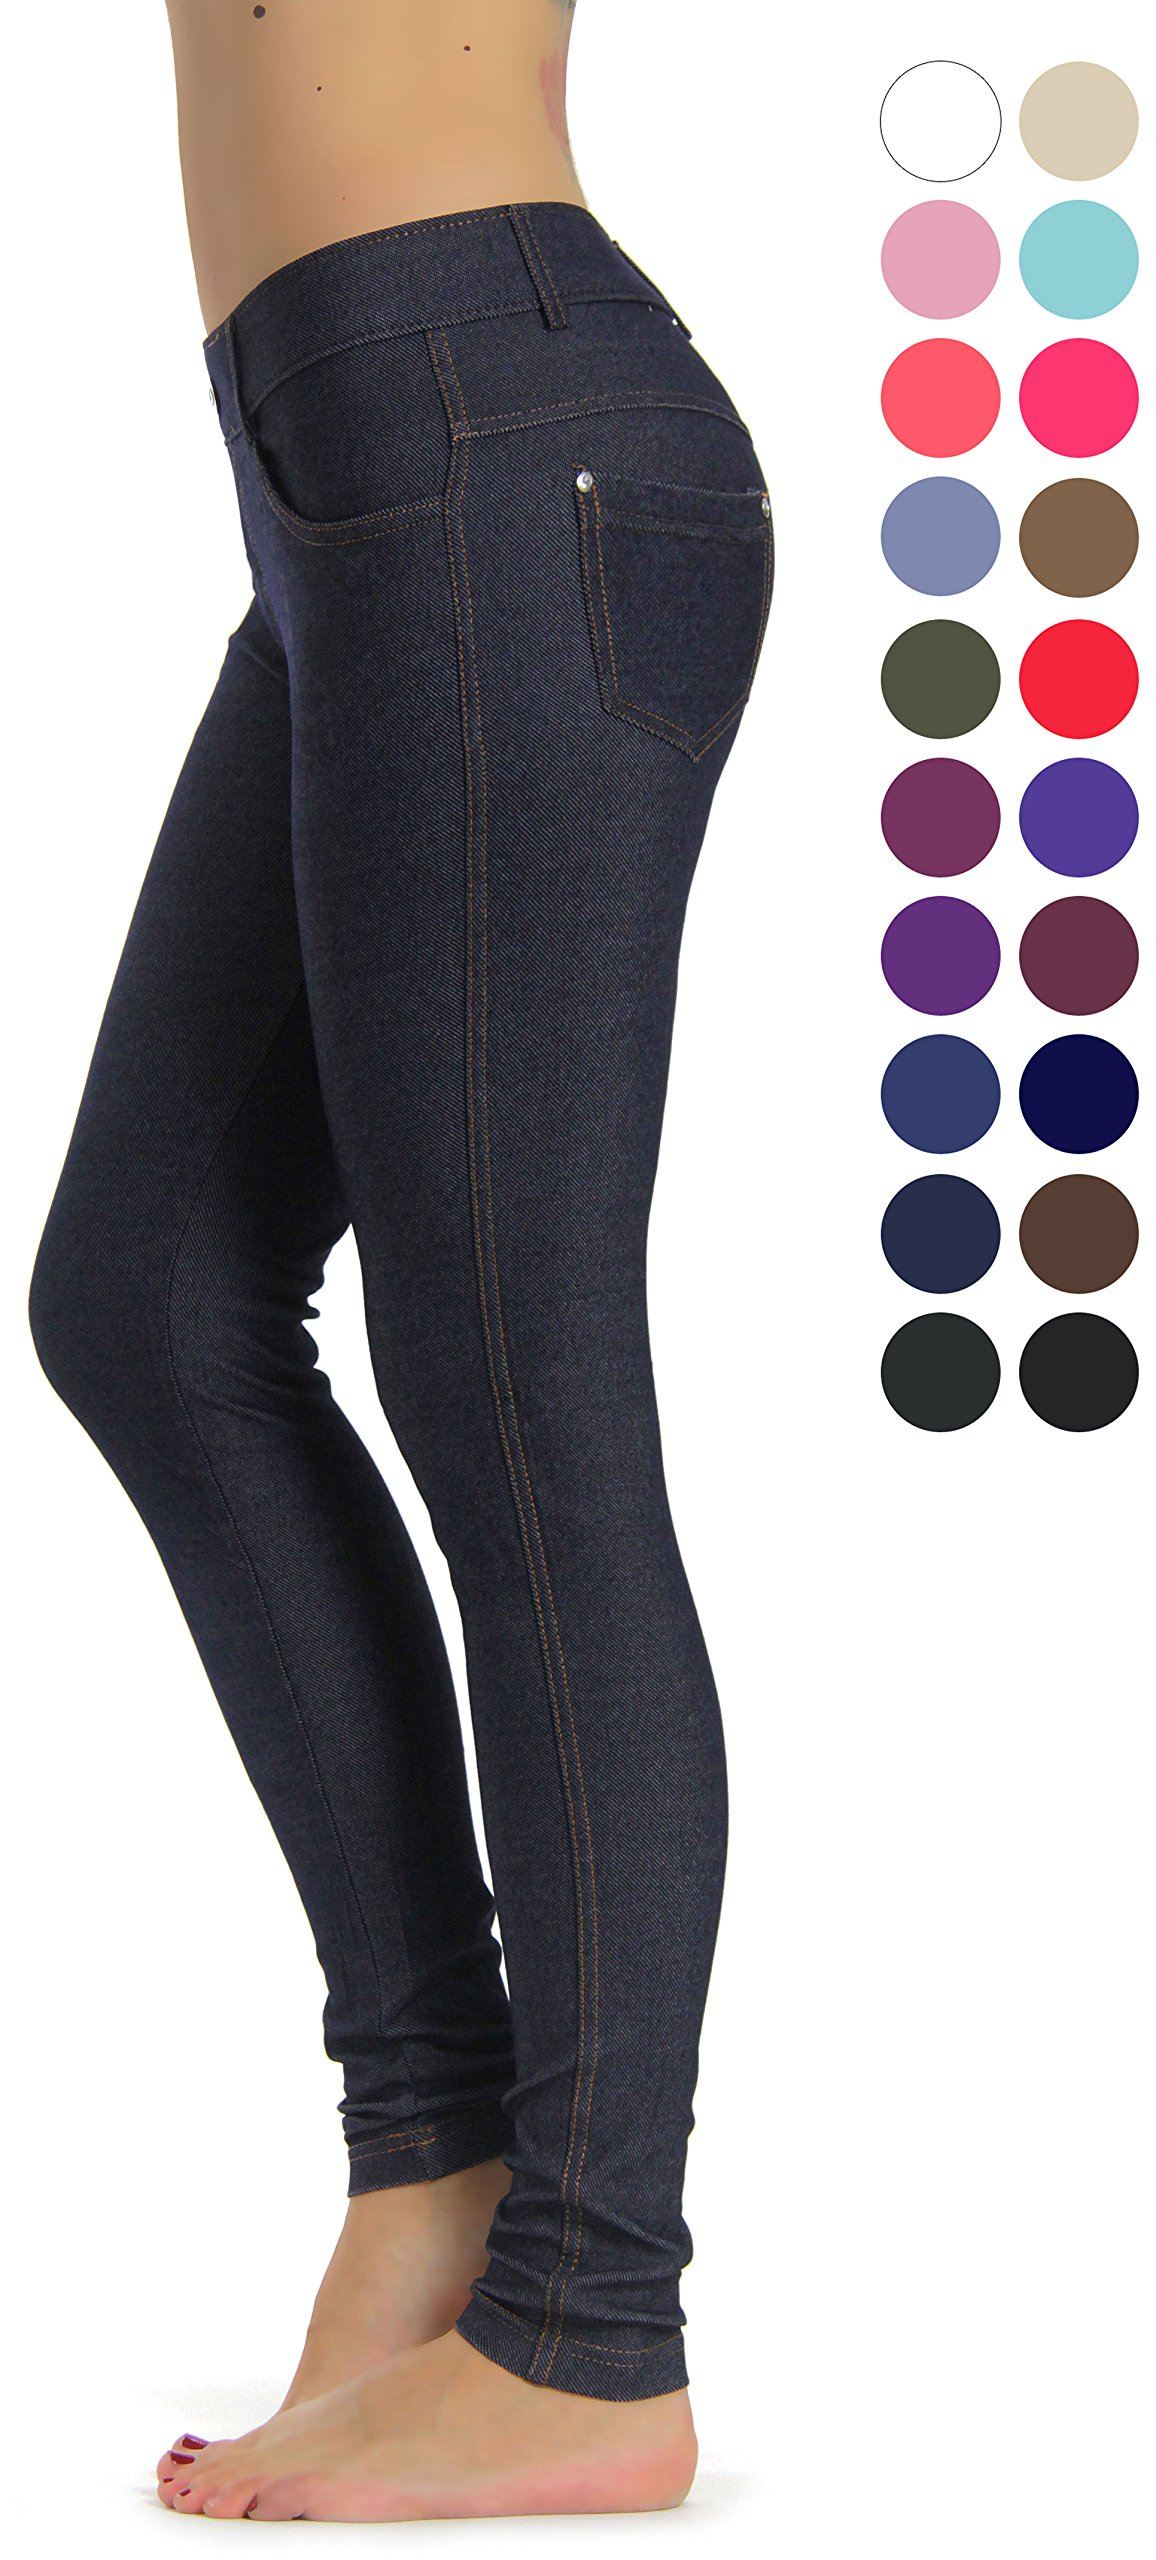 Prolific Health Women's Jean Look Jeggings Tights Yoga Many Colors Spandex Leggings Pants S-XXL (XXX-Large, Navy Blue)